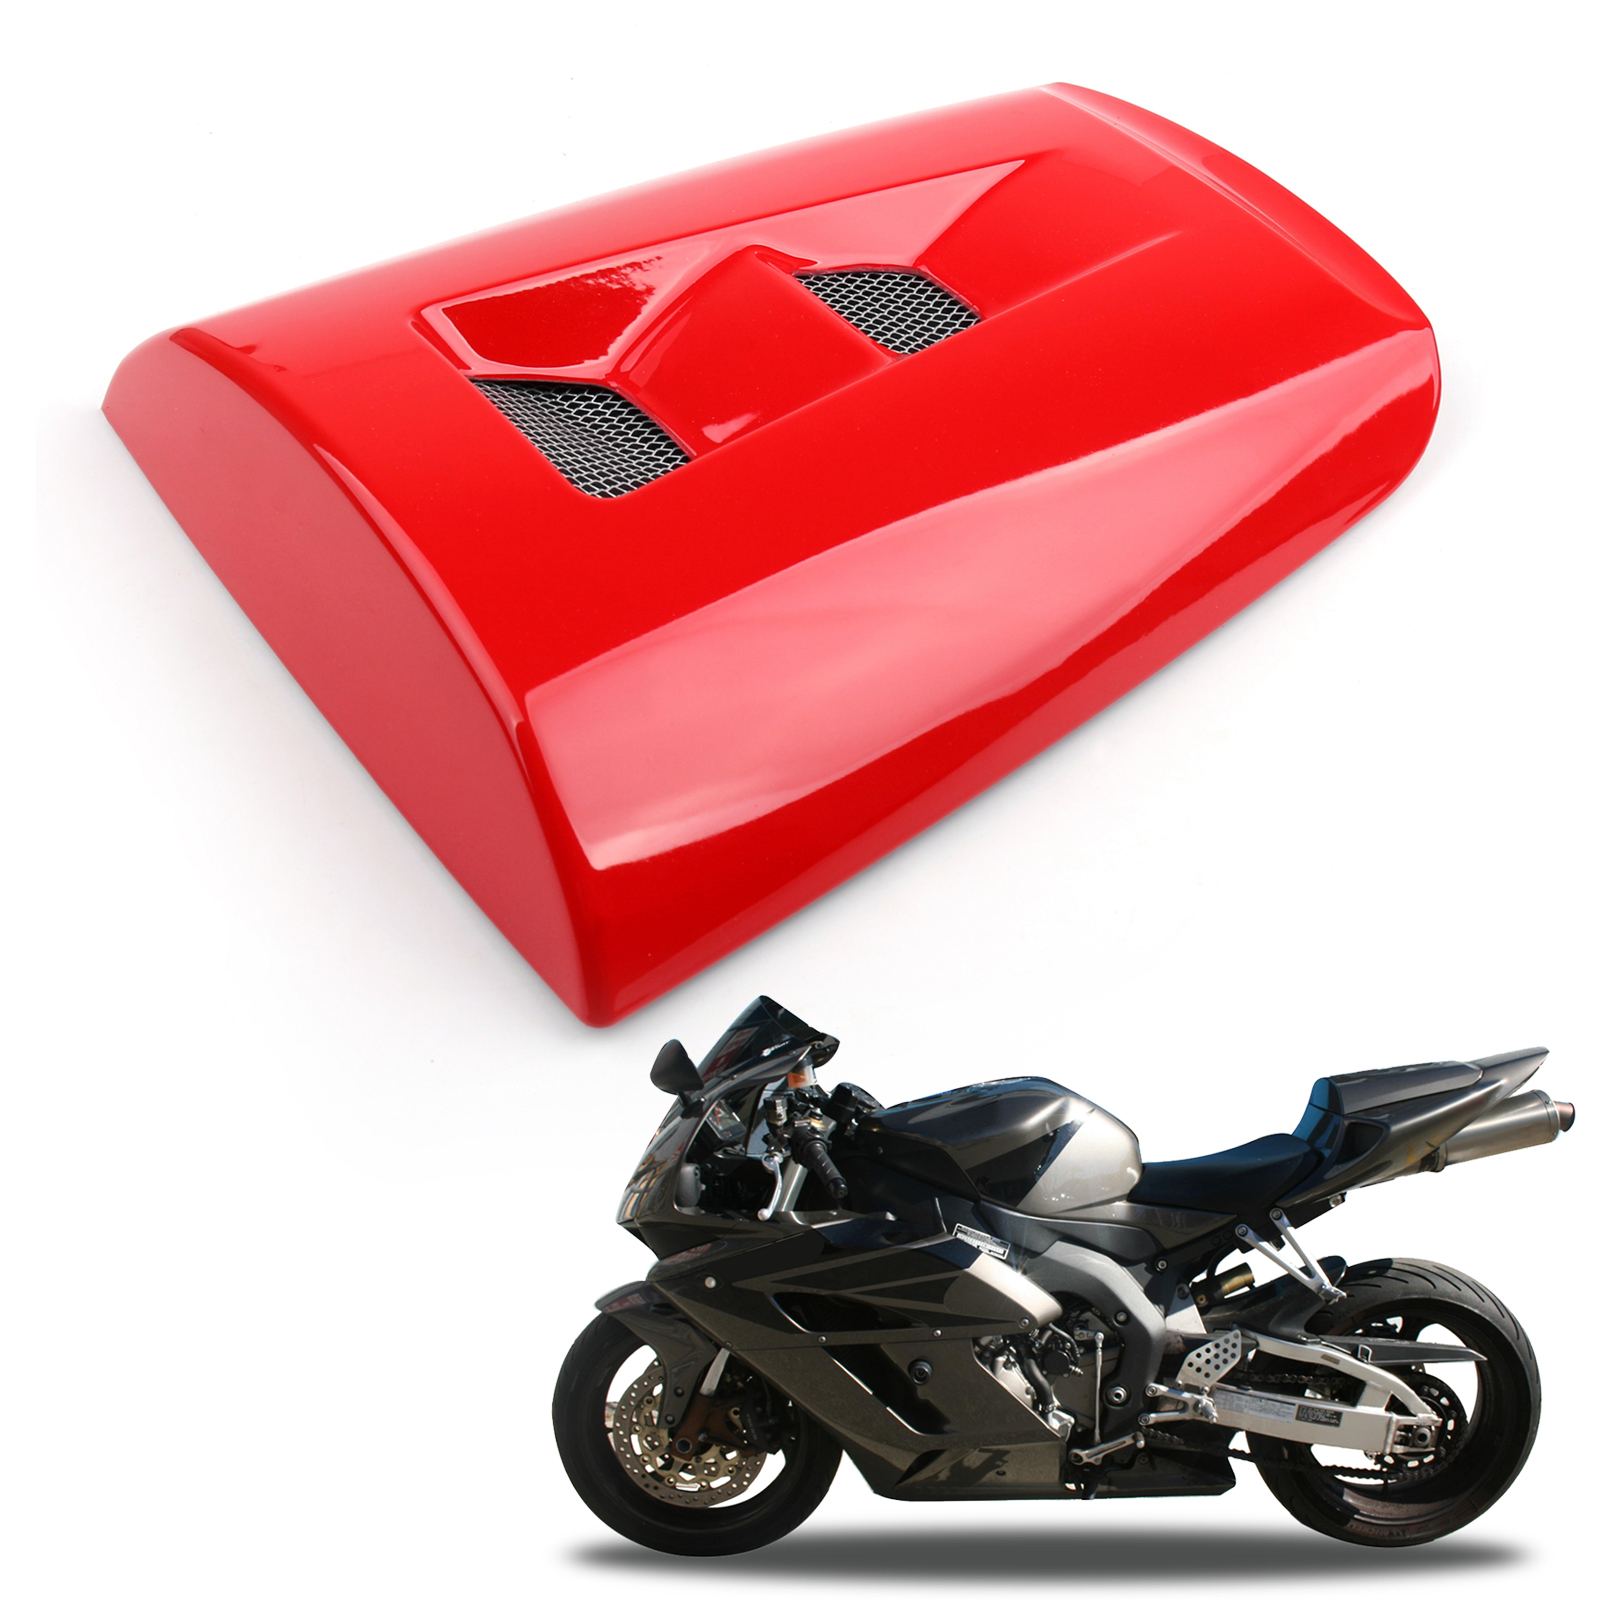 Areyourshop Rear Seat Cover cowl For Honda CBR1000RR CBR 1000RR 2004-2007